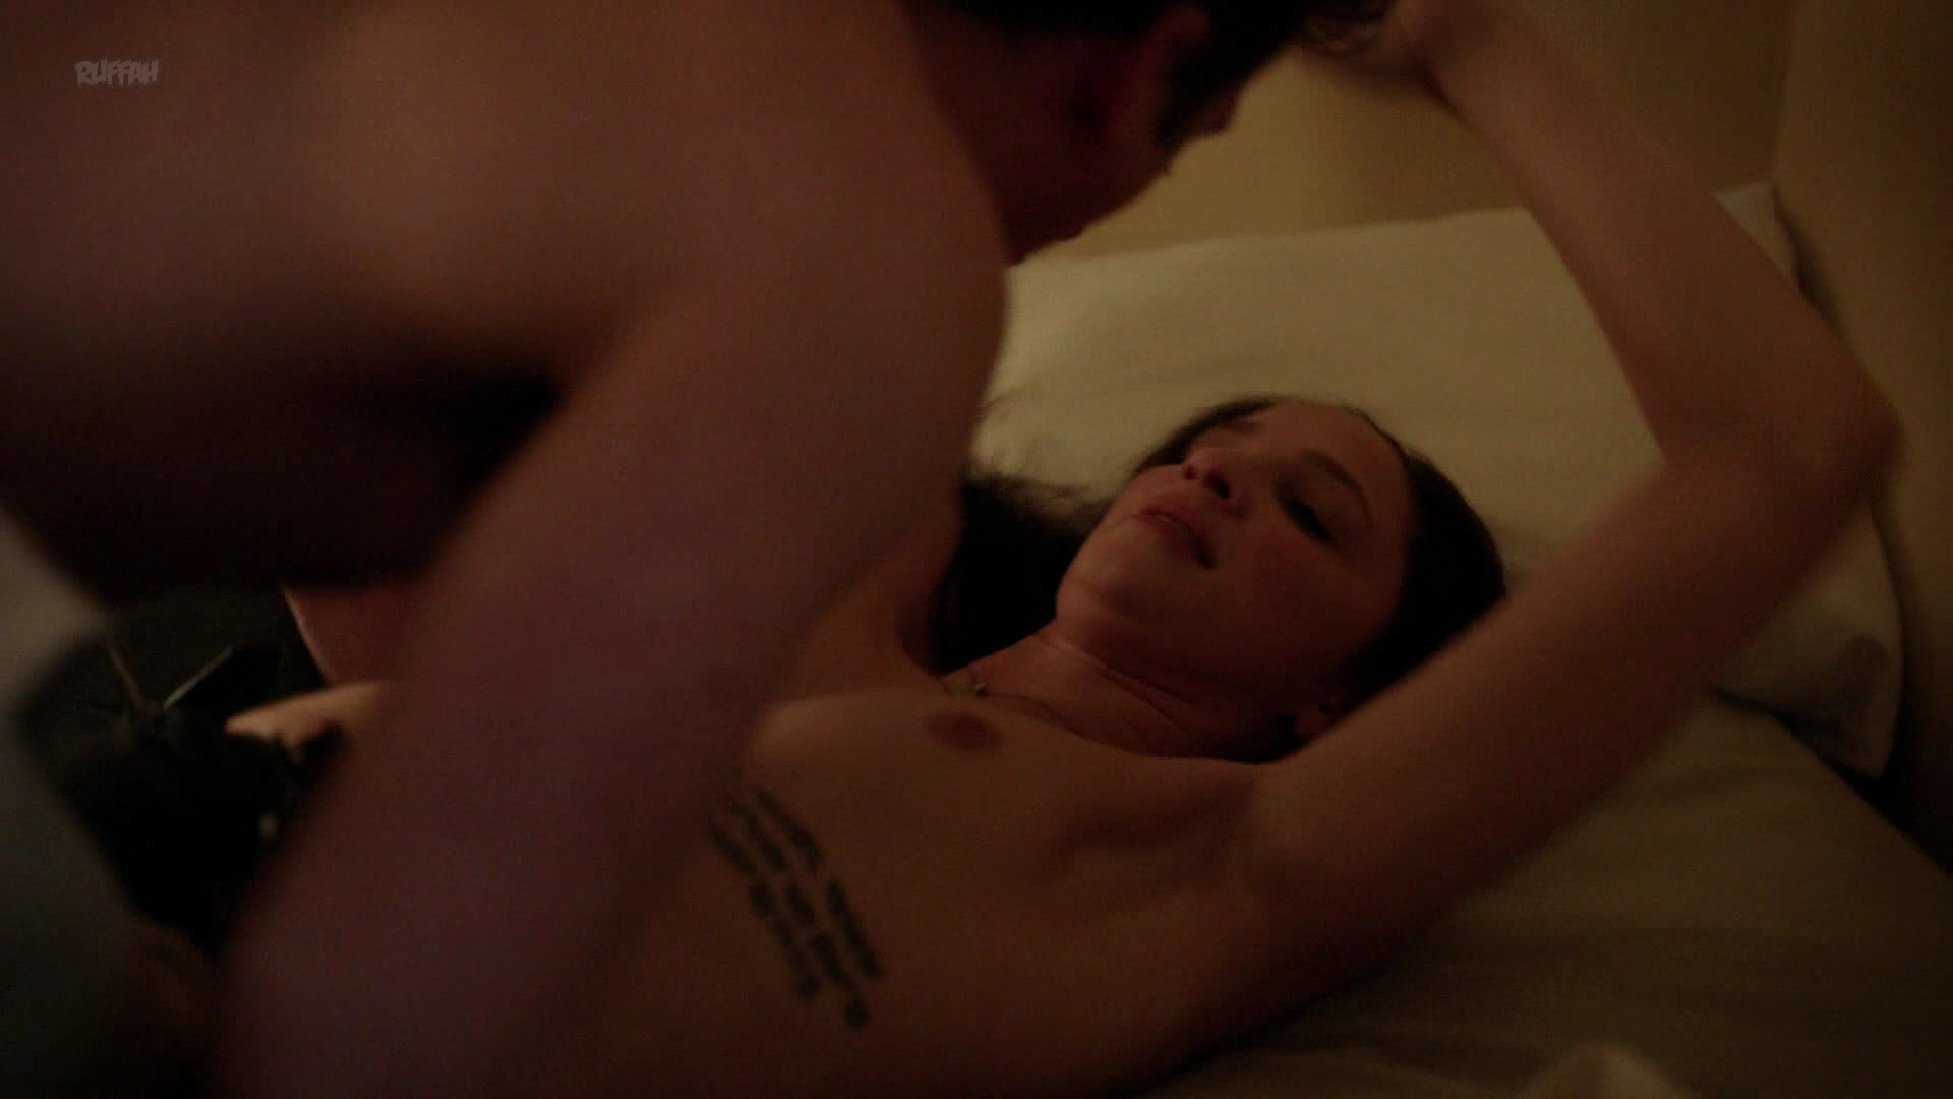 Ruby Modine nude - Shameless s08e11 (2018)